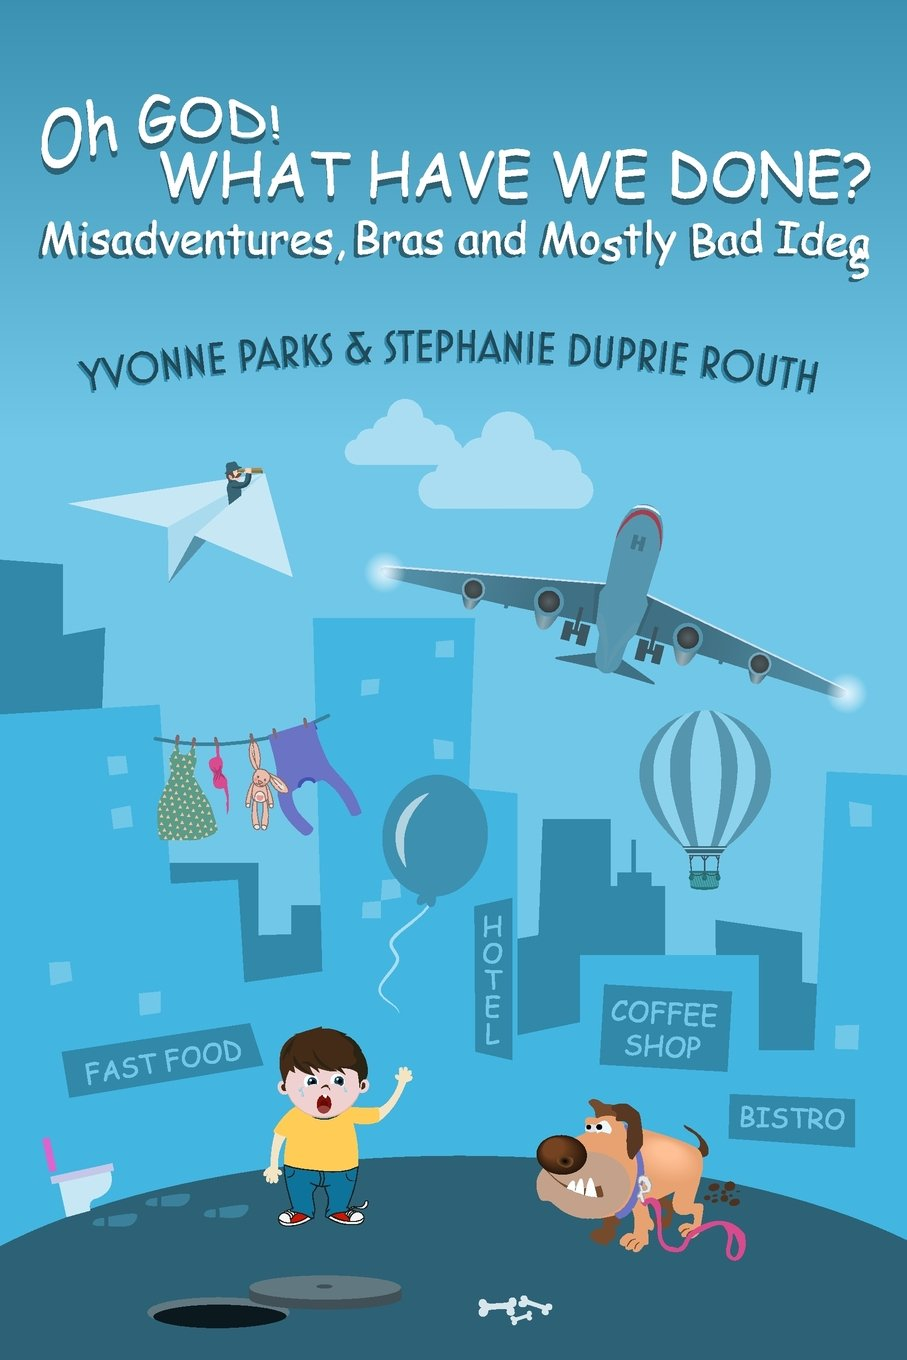 Download Oh GOD! WHAT HAVE WE DONE?: Misadventures, Bras and Mostly Bad Ideas PDF ePub book